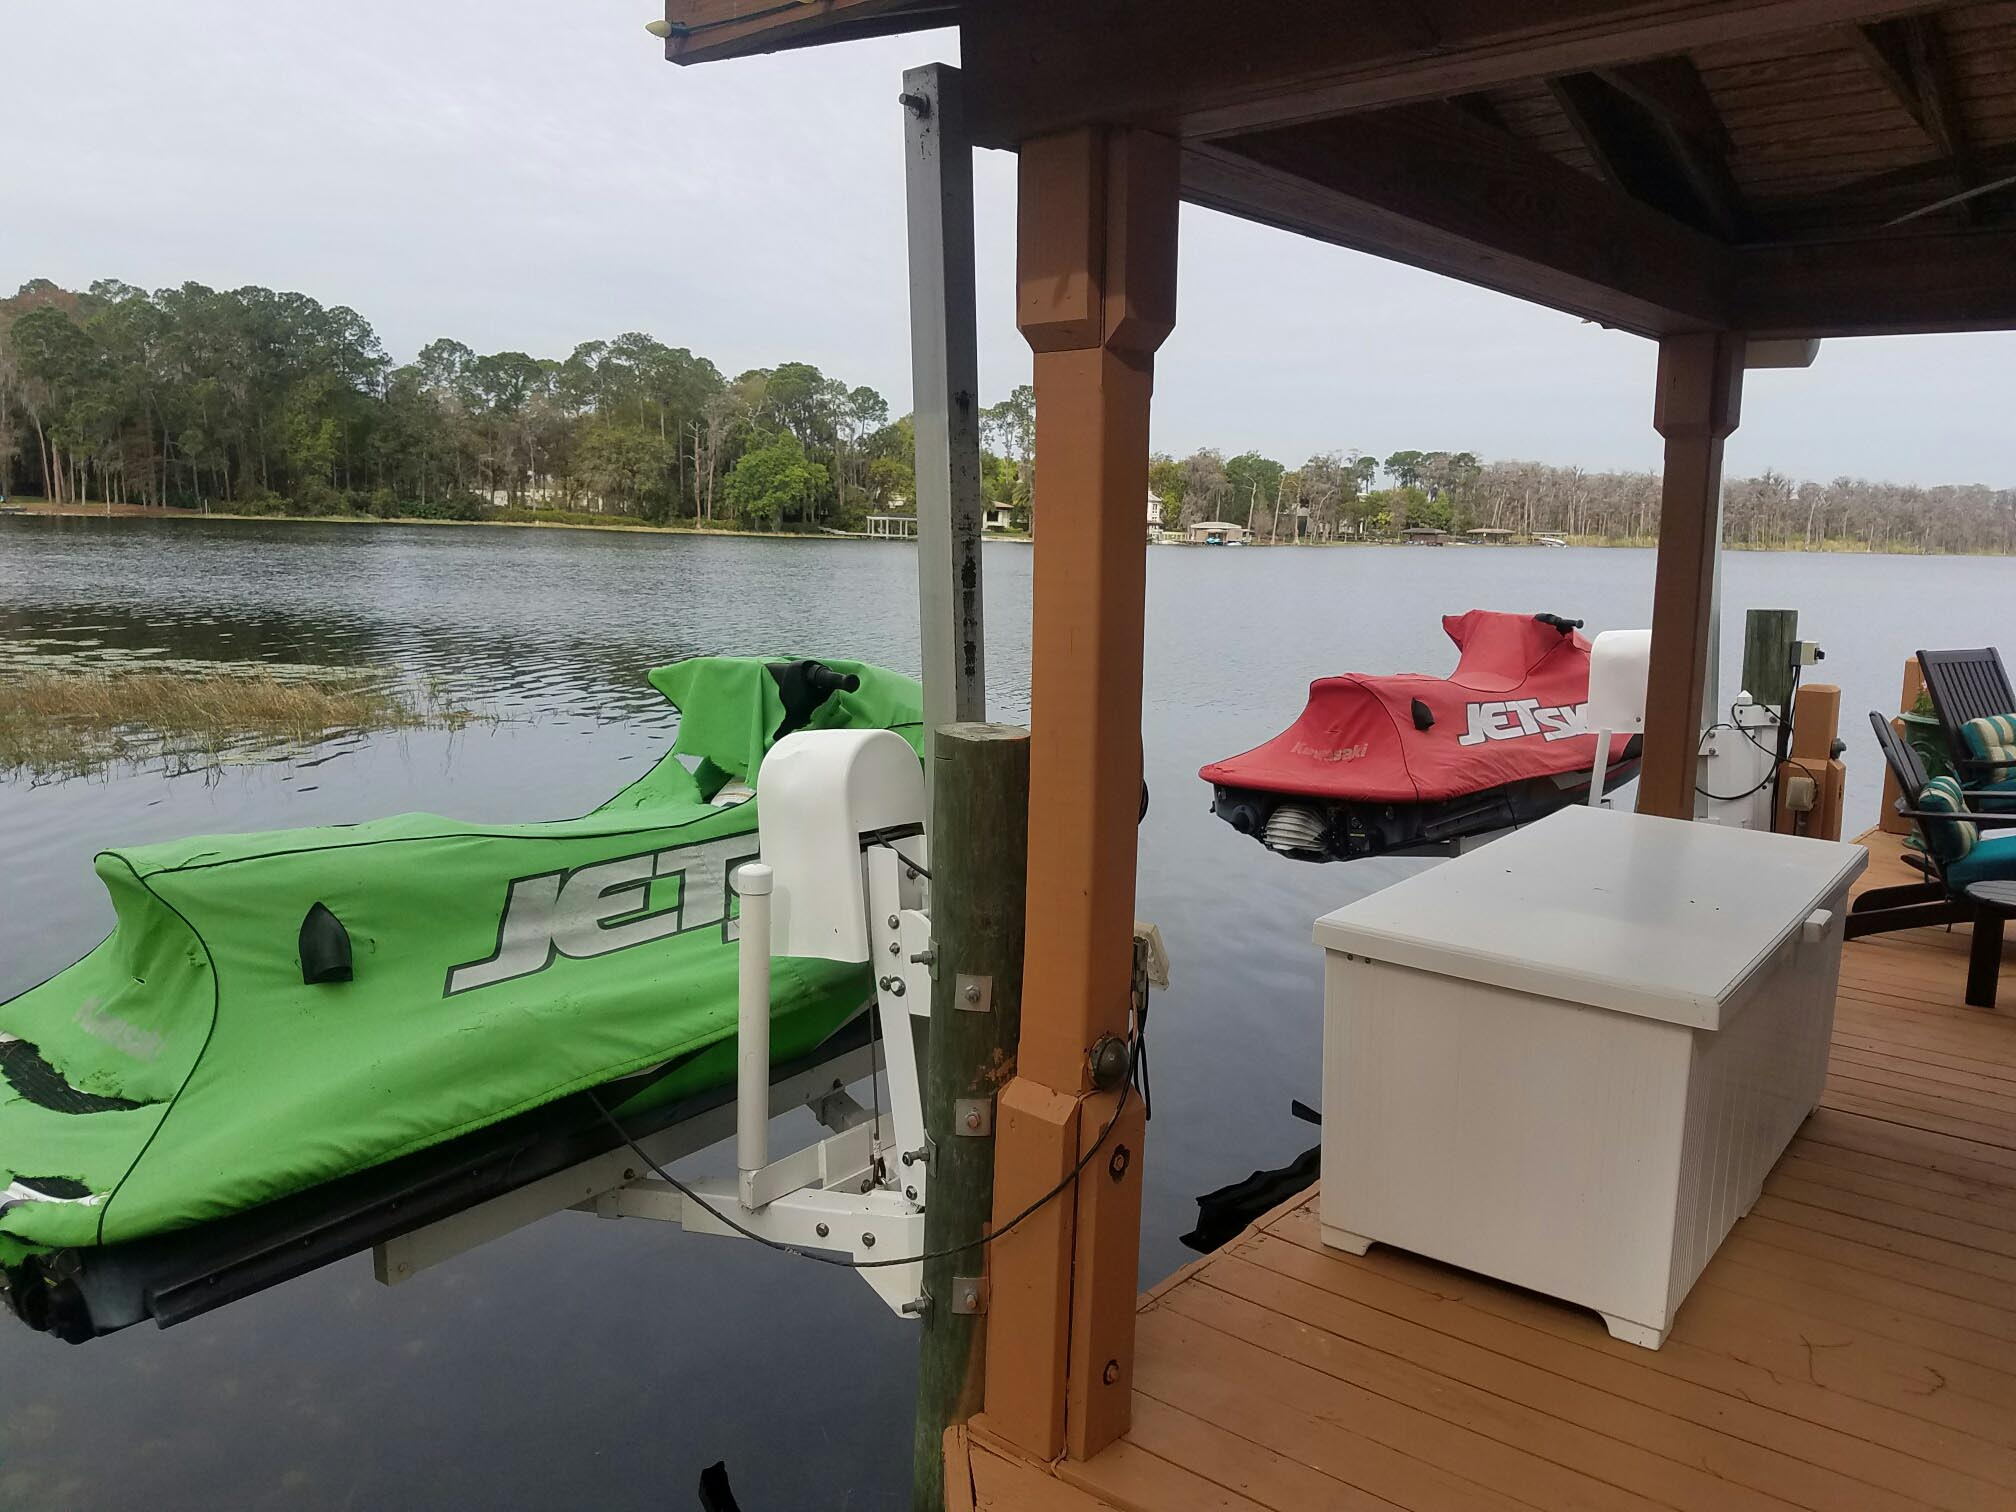 Claytons Mobile Marine Services Orlando Boat Repair Boat Repair Boat Repair Orlando Winter Park Chain of lakes boat repair wwwClaytonsMobileMarineServices.com